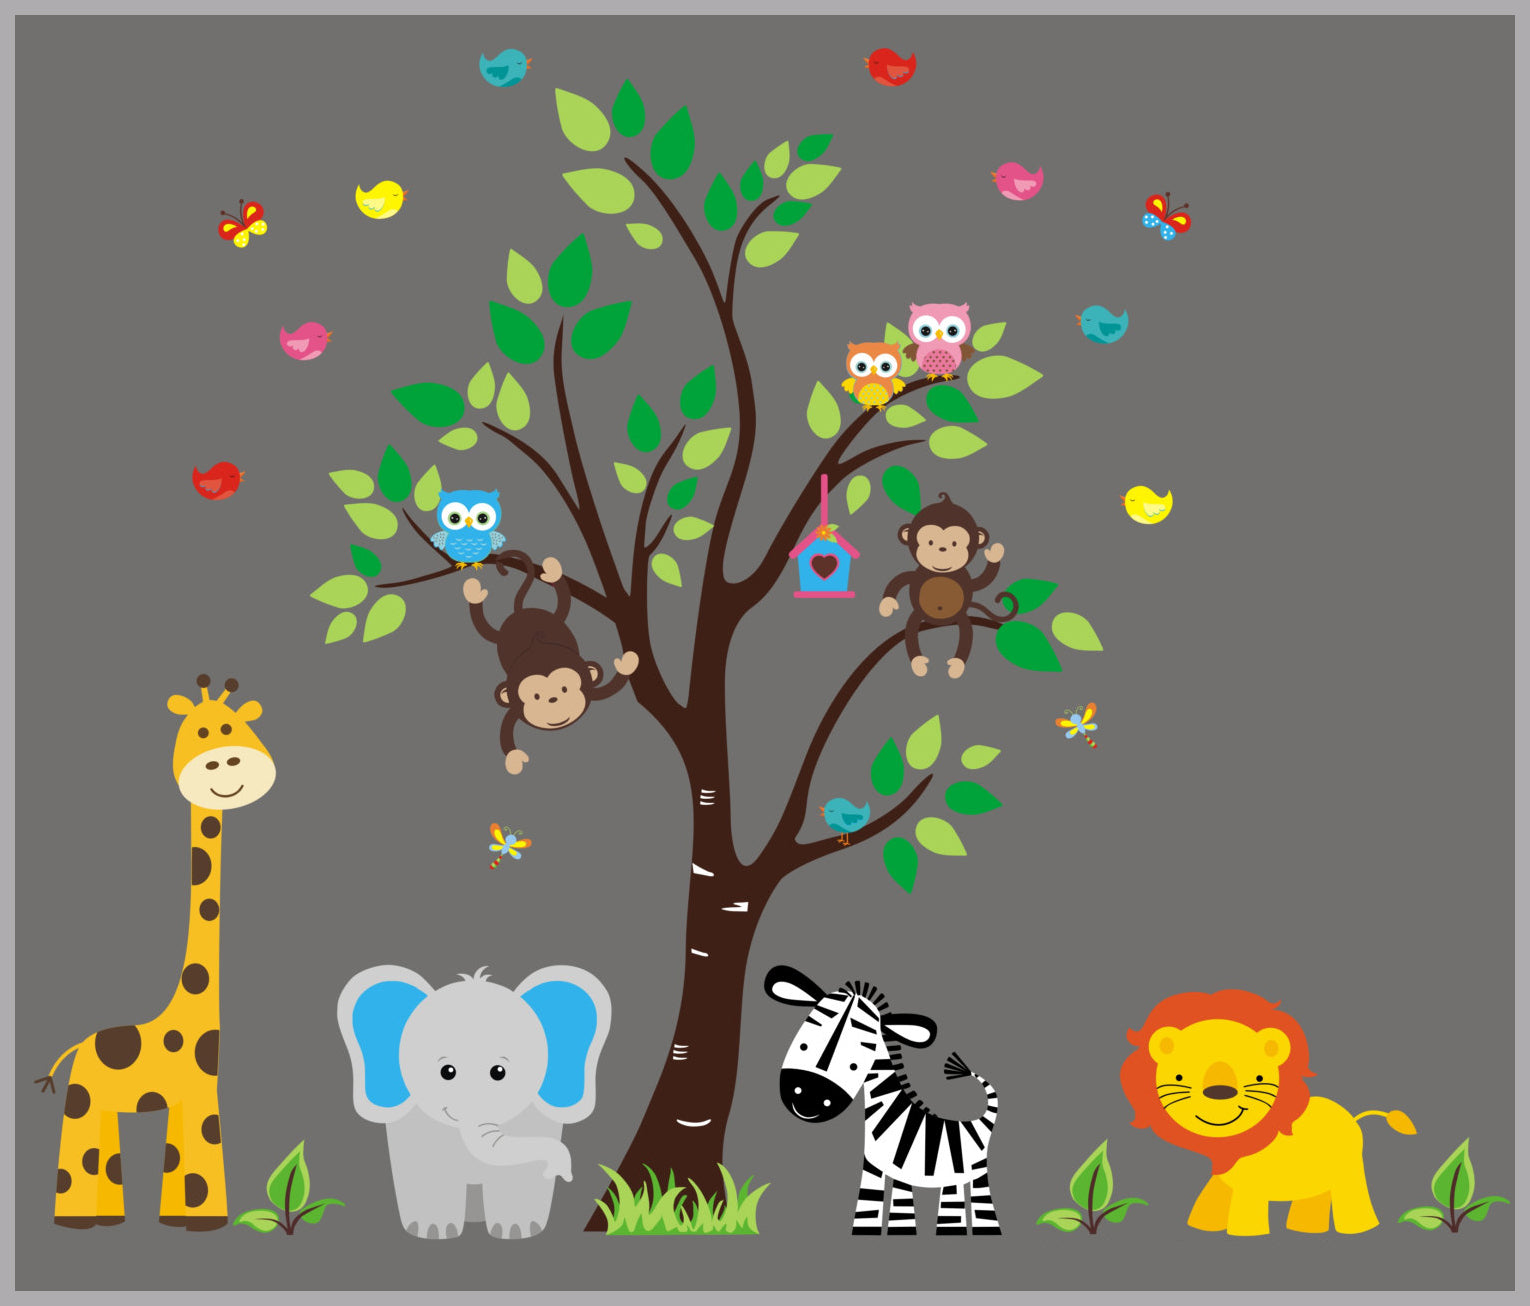 """Kids Room Wall Decals - Baby Nursery Wall Decal - Safari Wall Decals -  Jungle Wall Decals - Nursery Room Decor - Large Decals - 10"""" x 10"""""""